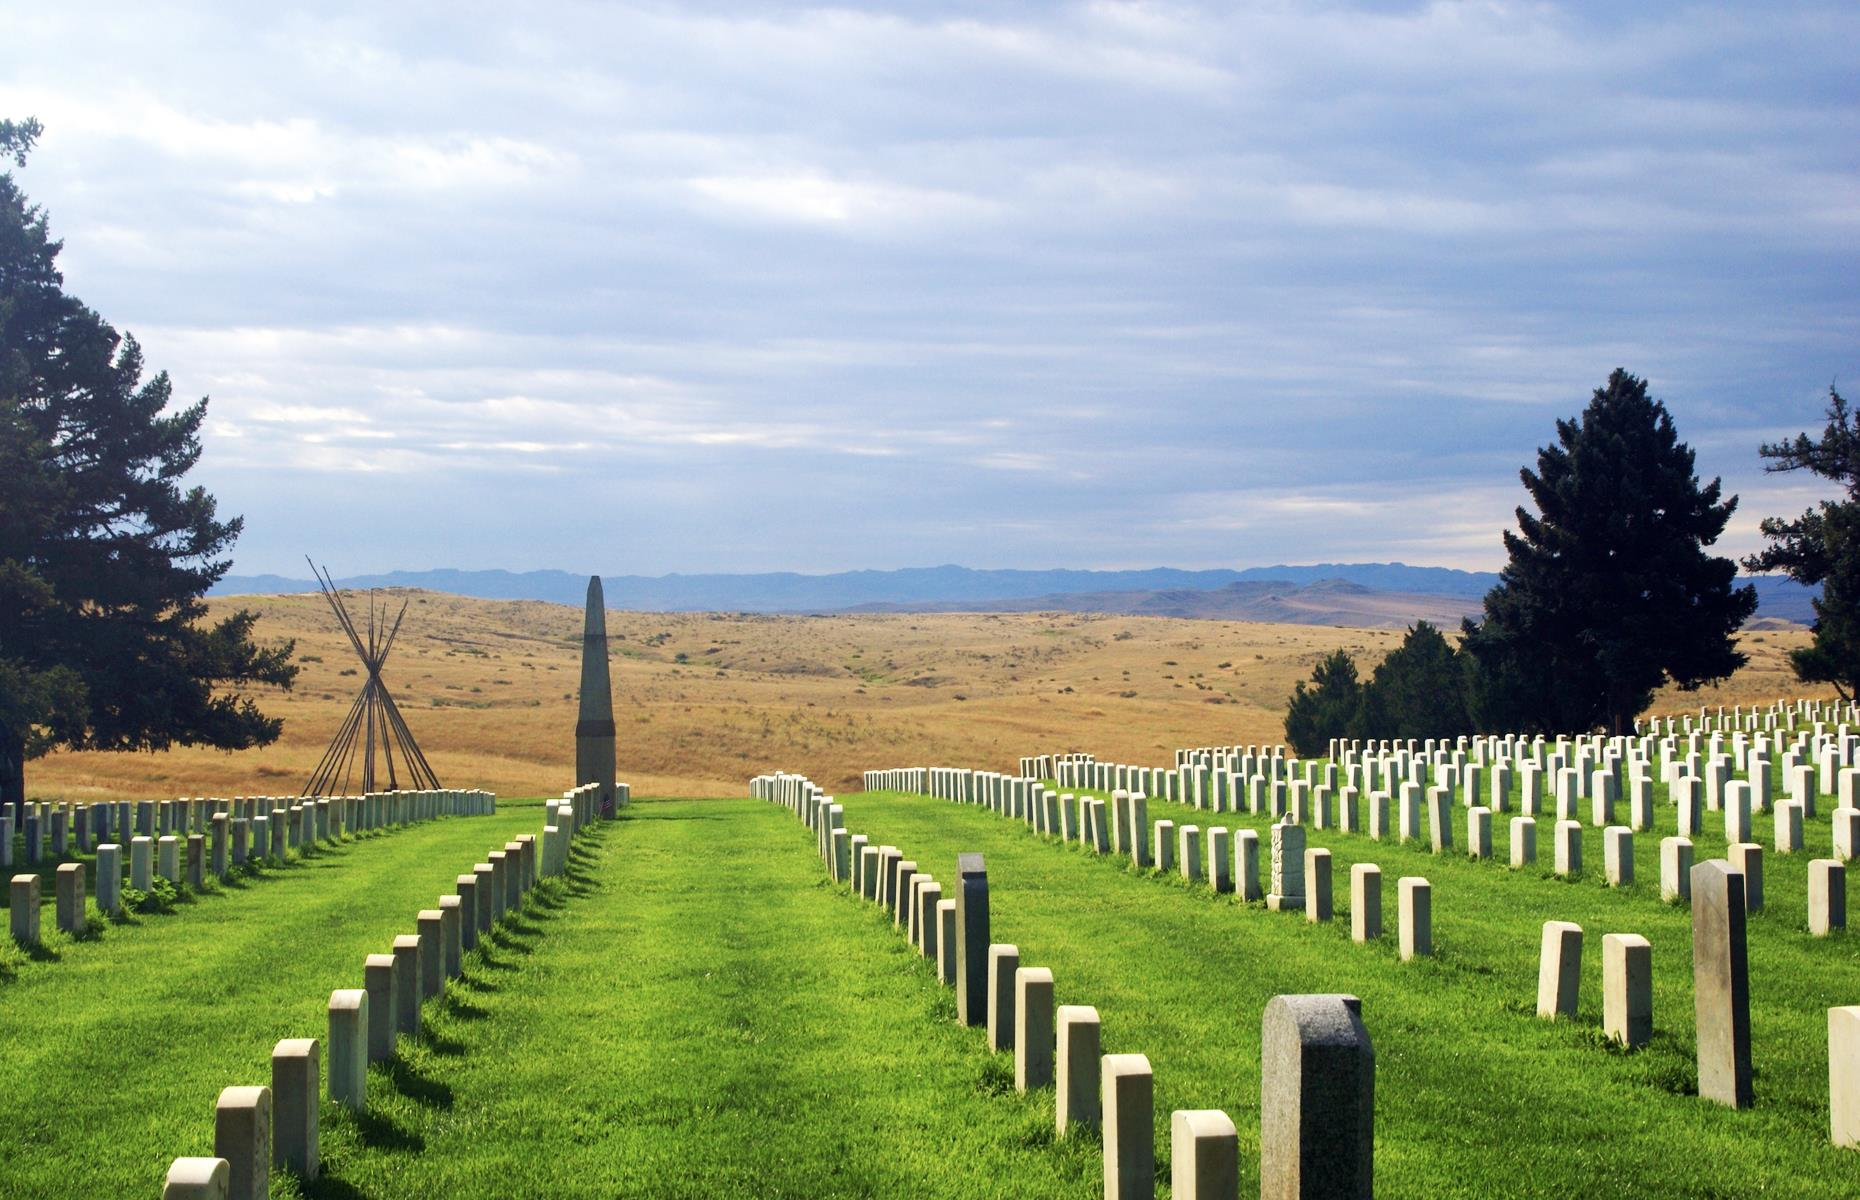 "Slide 29 of 51: This site commemorates ""Custer's Last Stand"", an 1876 battle between US troops and the Lakota Sioux, Arapaho and Northern Cheyenne tribes. As part of an ongoing campaign, the United States attempted to seize land belonging to these peoples. The Americans were defeated this time, representing a single victory for the indigenous people. Today, a granite memorial and acres of gravestones honor the thousands who died here. The Spirit Warrior Sculpture specifically marks the sacrifices made by the indigenous peoples."